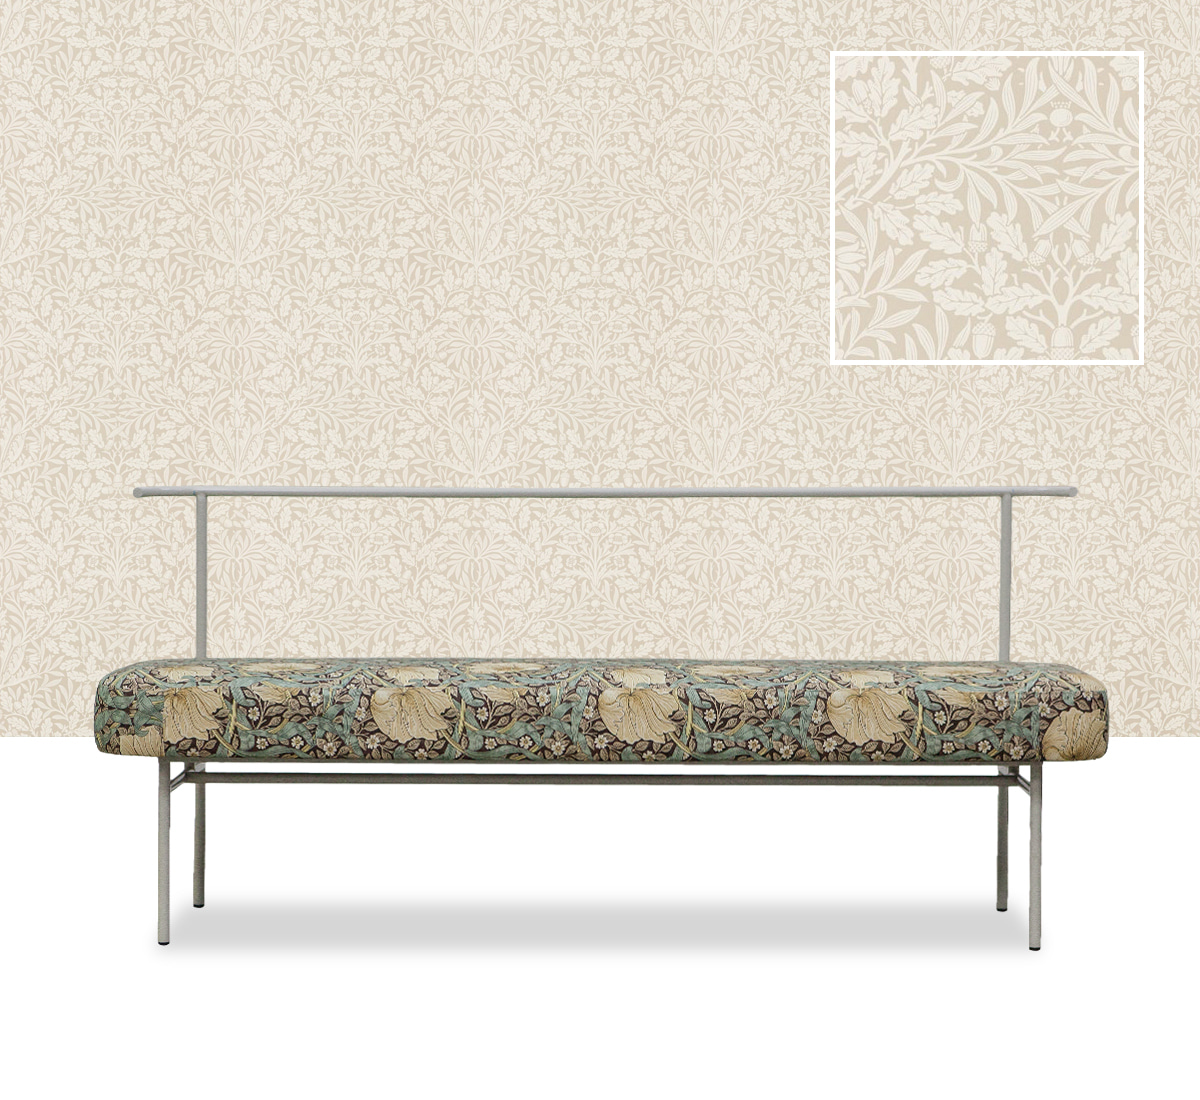 Zacc collection by SEDEC B 160 Bench (Pimpernel Green) B 160 벤치 (핌퍼넬 그린)